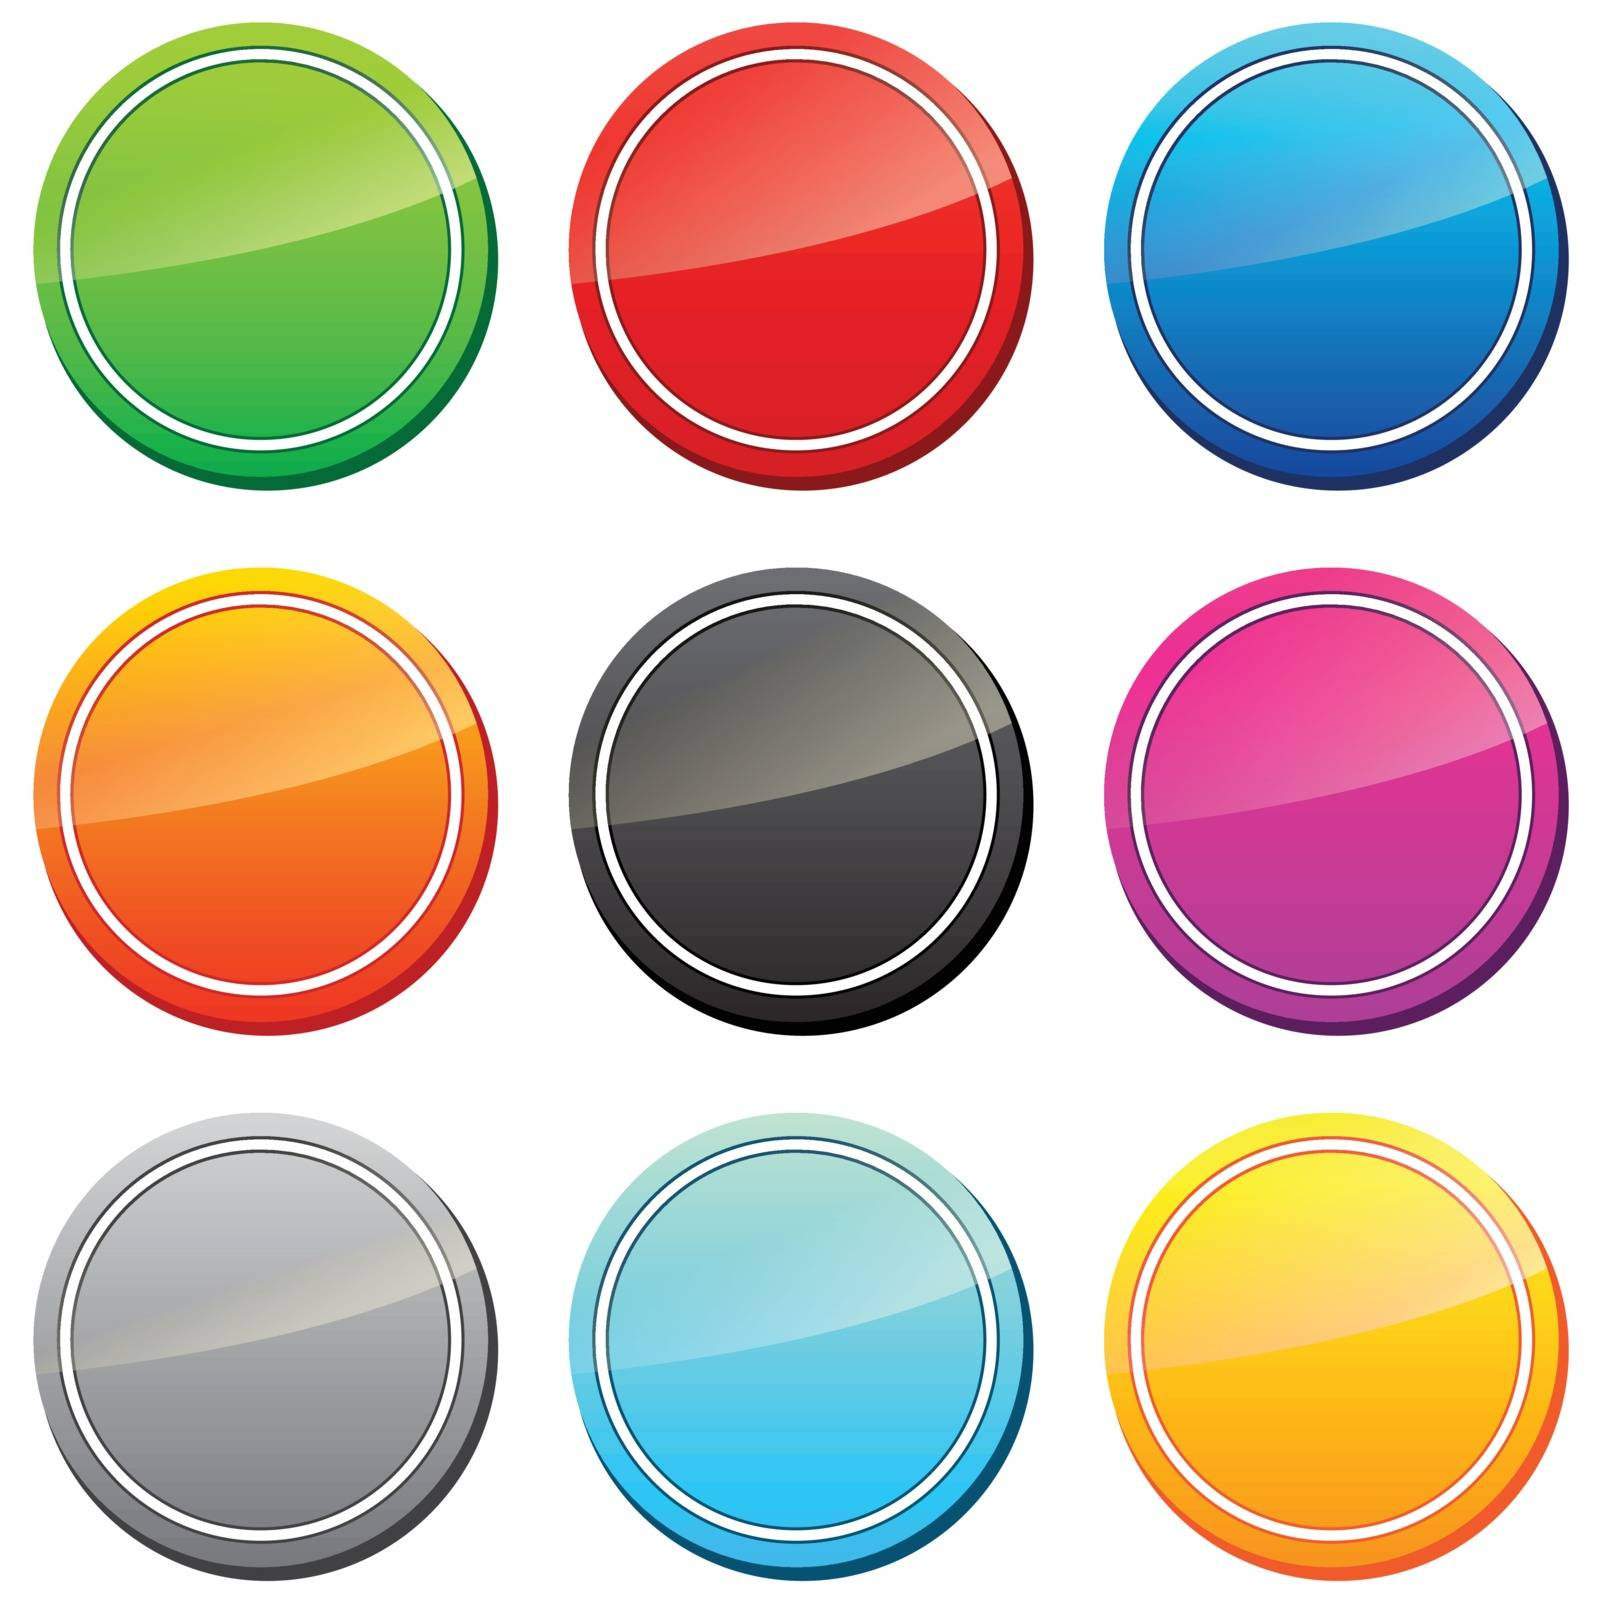 Set of icons in different colors